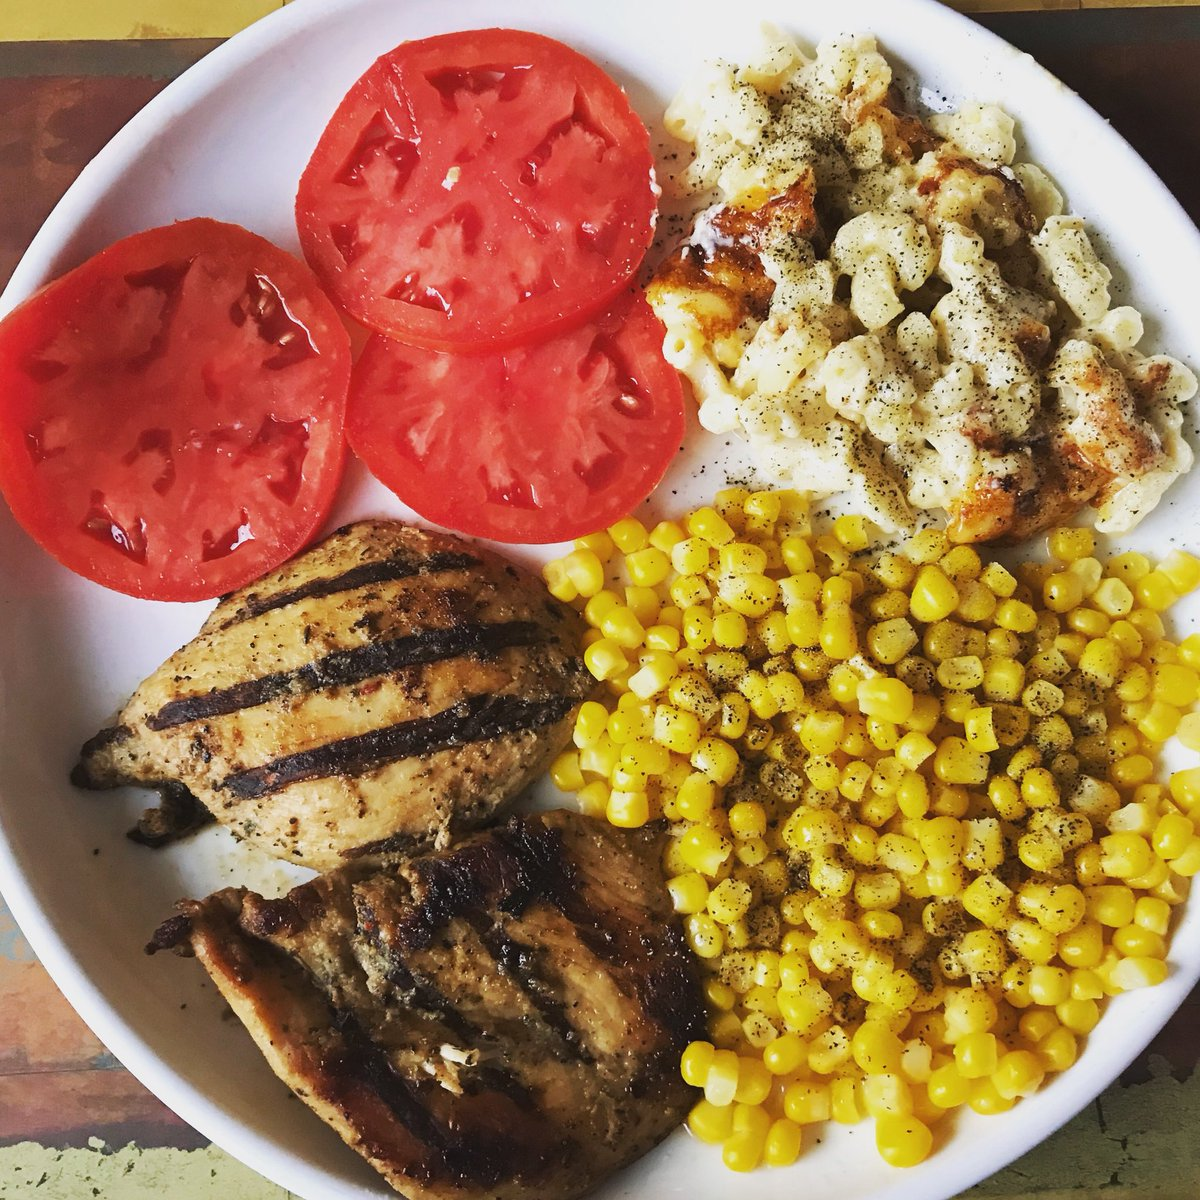 Summertime dinner done! No green? No problem! #grilledchicken #corn #tomatoes #macandcheese courtesy @sbaker550 #smilinyumcam @ArumsFoodFotos